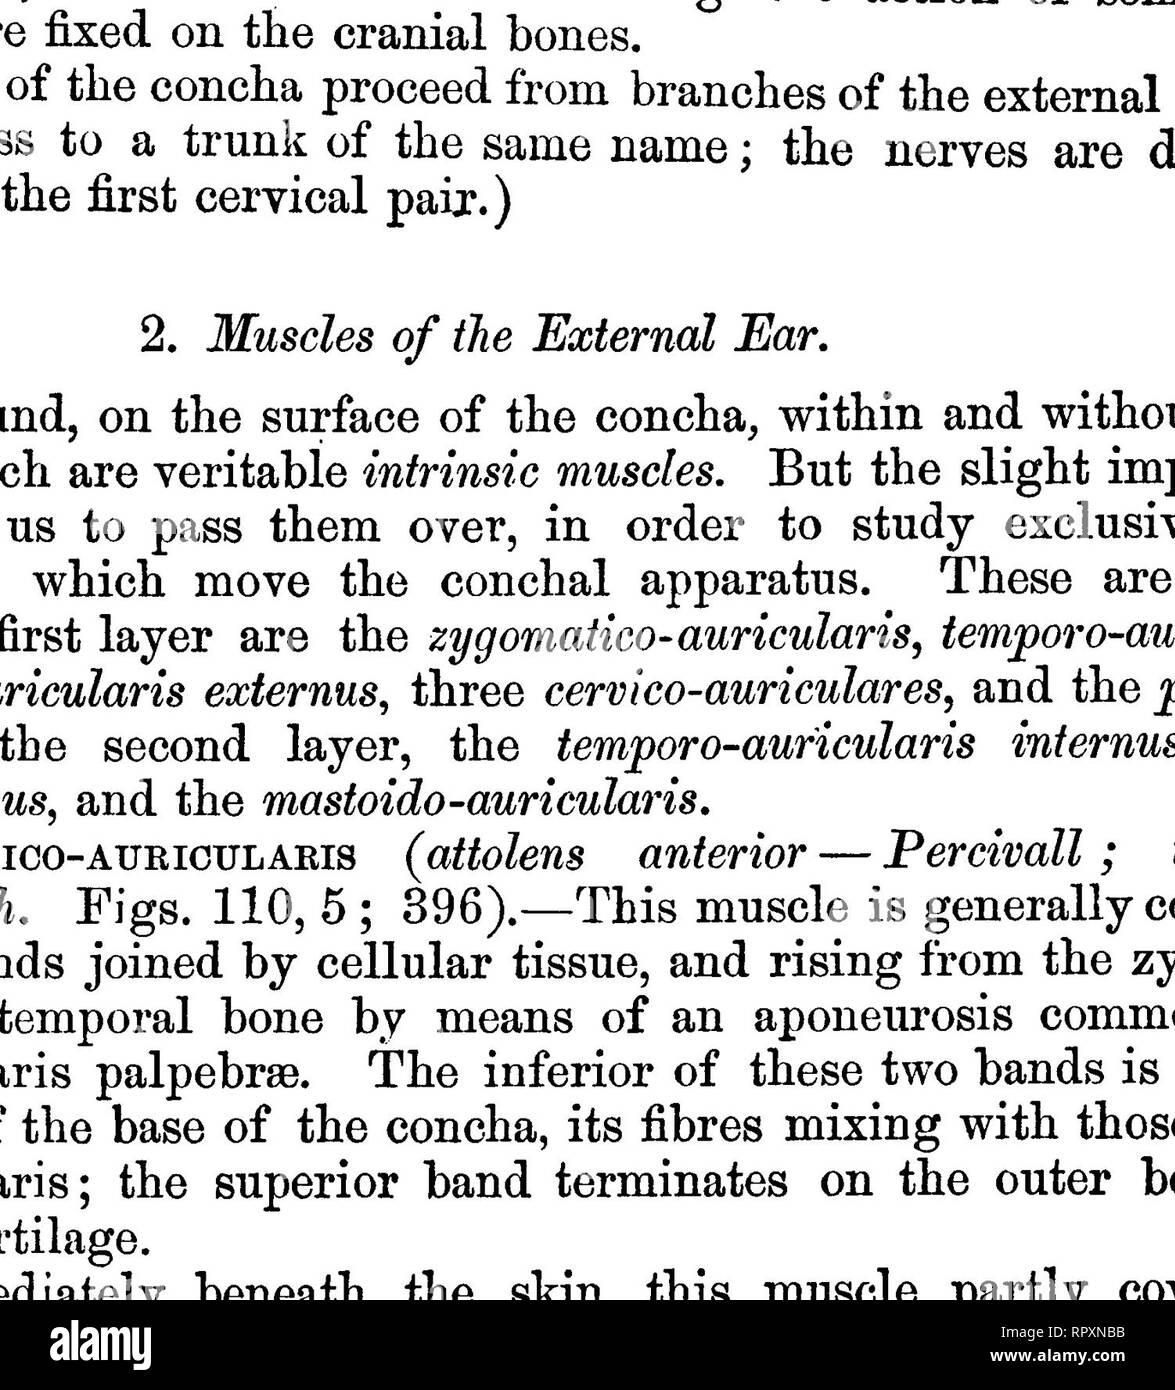 . The comparative anatomy of the domesticated animals. Veterinary anatomy. 848 THE APPARATUS OF THE SENSES, not join on the median line, but are placed at the sides of the head, below the horns.) 3. ScuTO-AURicuLARis ExTERNUS (anterior concJice—Percivall. Fig. 396). —This muscle may be said to be a dependency of the preceding, whose action it transmits to the conchal cartilage, and renders it more complete. Extending from the external face of the scutiform cartilage to the inner side of the concha, and generally composed of two fasciculi, it is covered by the skin and the conchal band of the e - Stock Image